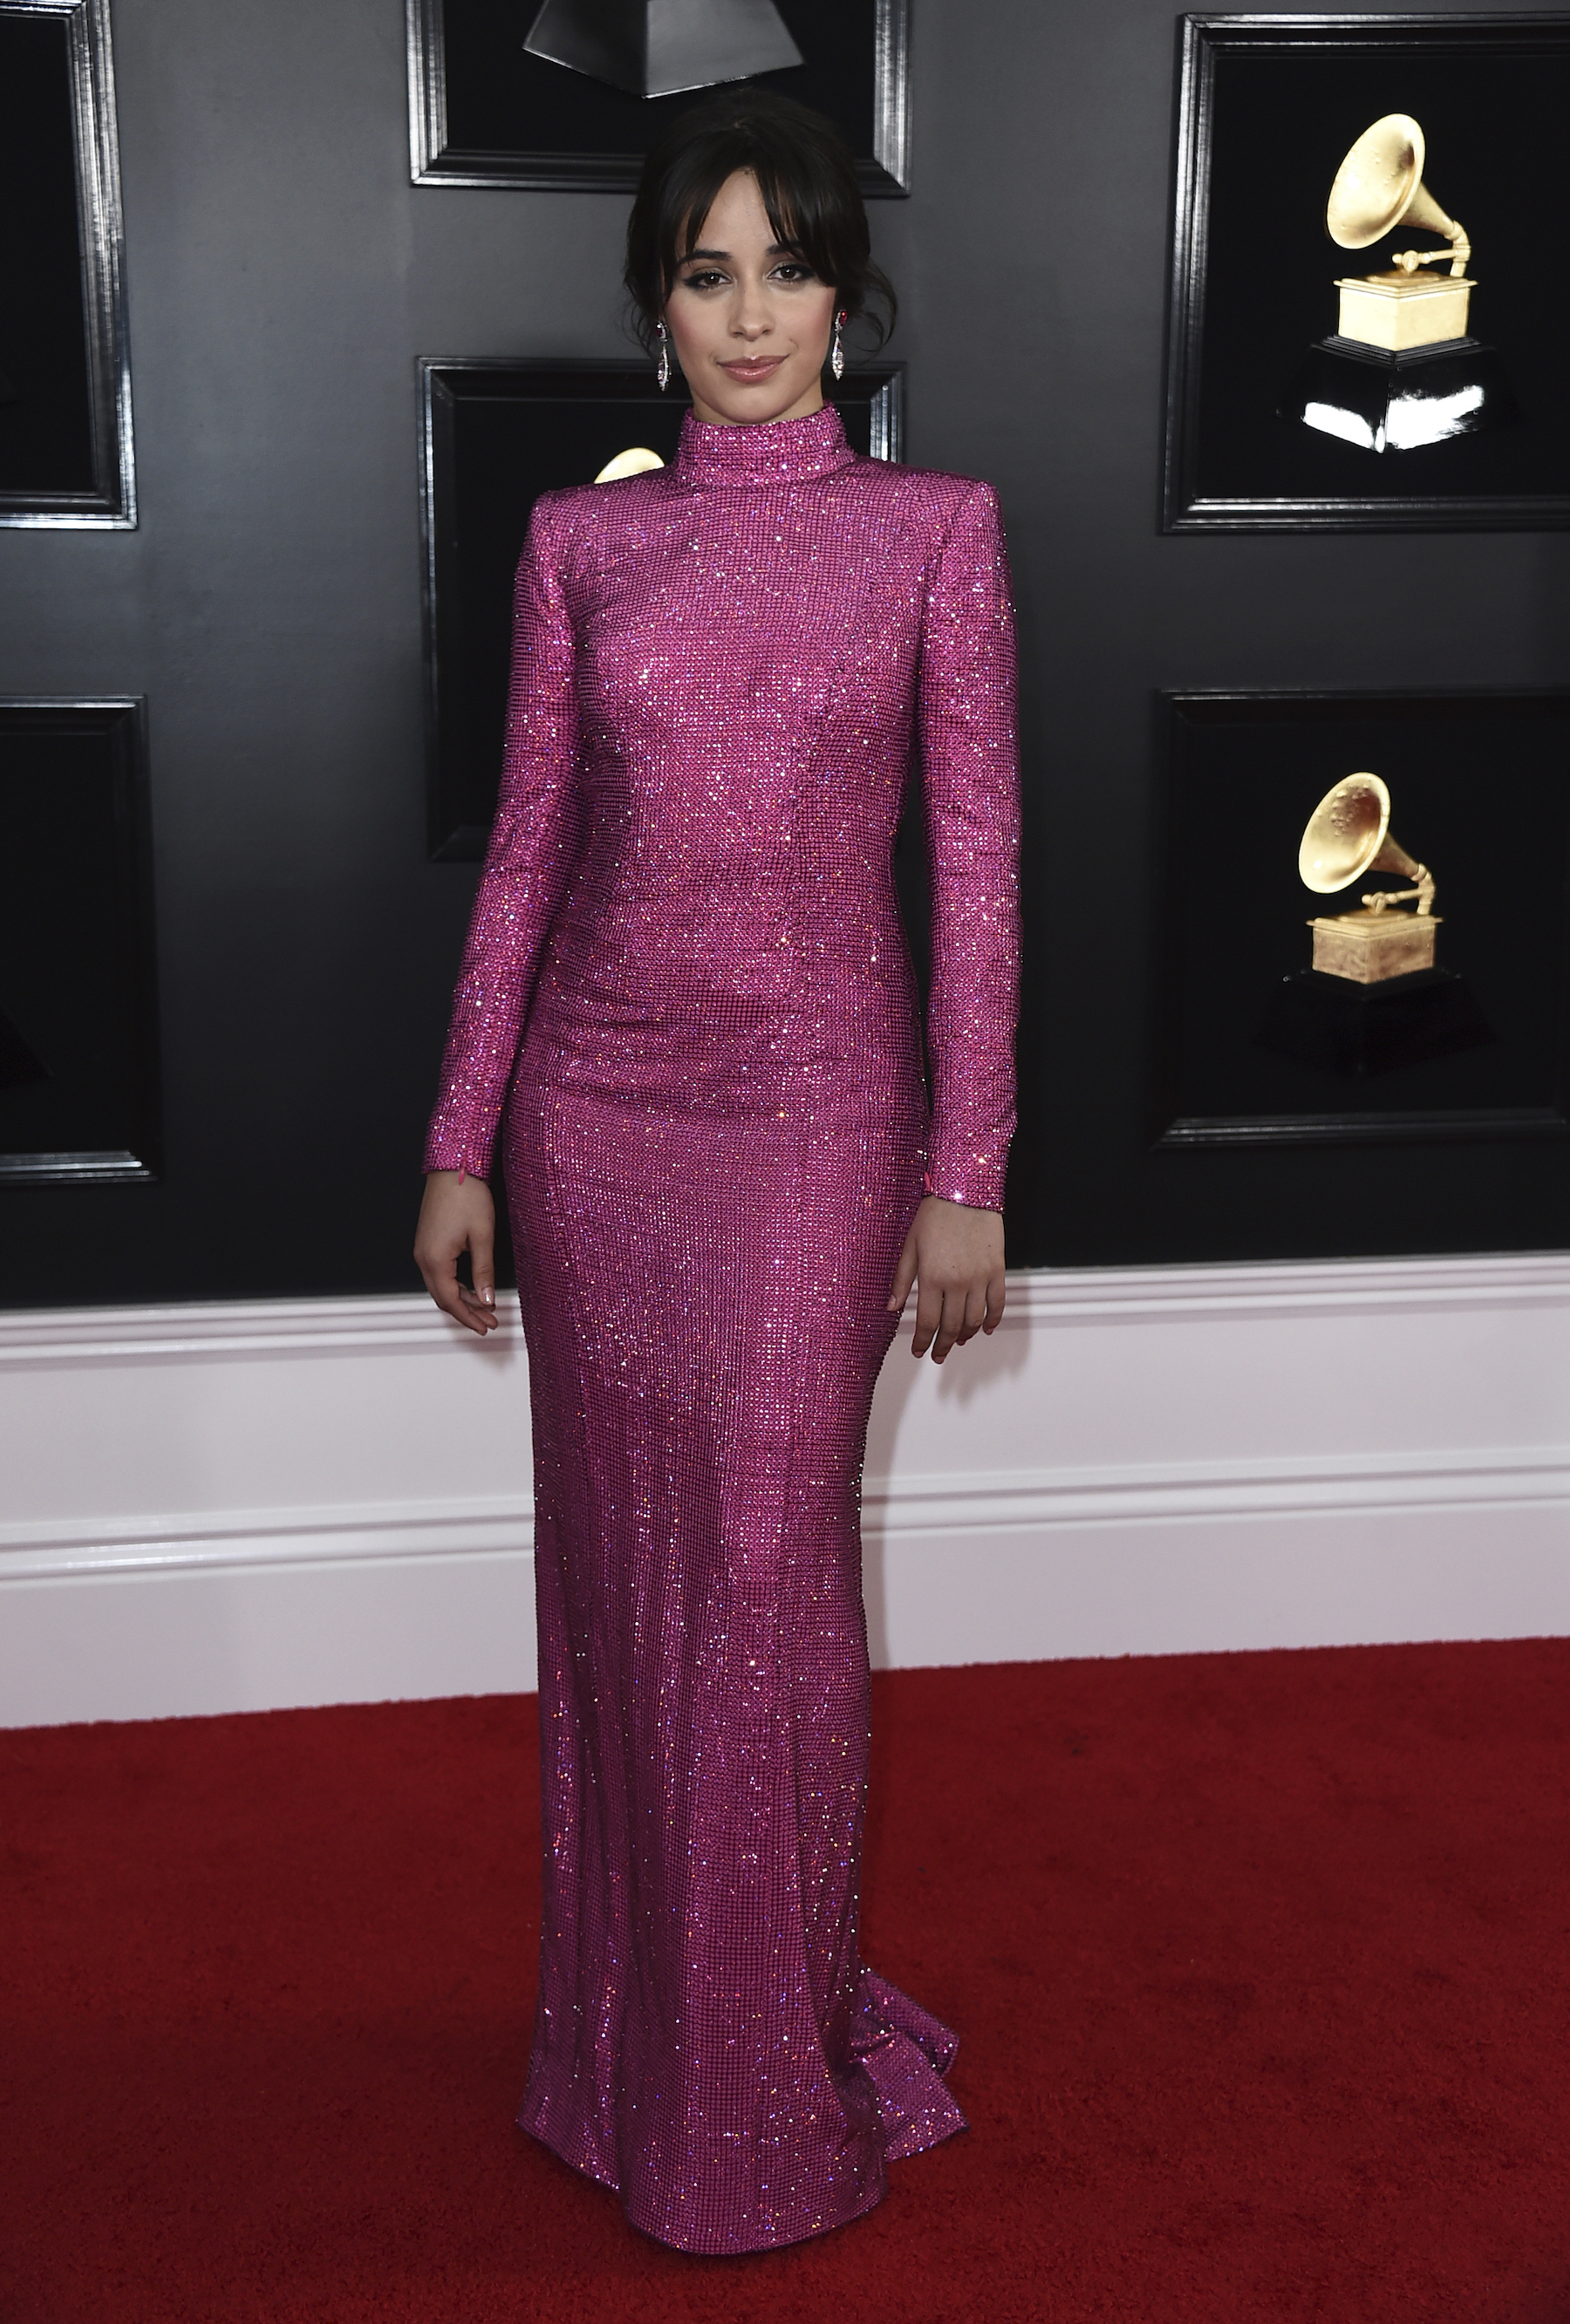 <div class='meta'><div class='origin-logo' data-origin='AP'></div><span class='caption-text' data-credit='Jordan Strauss/Invision/AP'>Camila Cabello arrives at the 61st annual Grammy Awards at the Staples Center on Sunday, Feb. 10, 2019, in Los Angeles.</span></div>